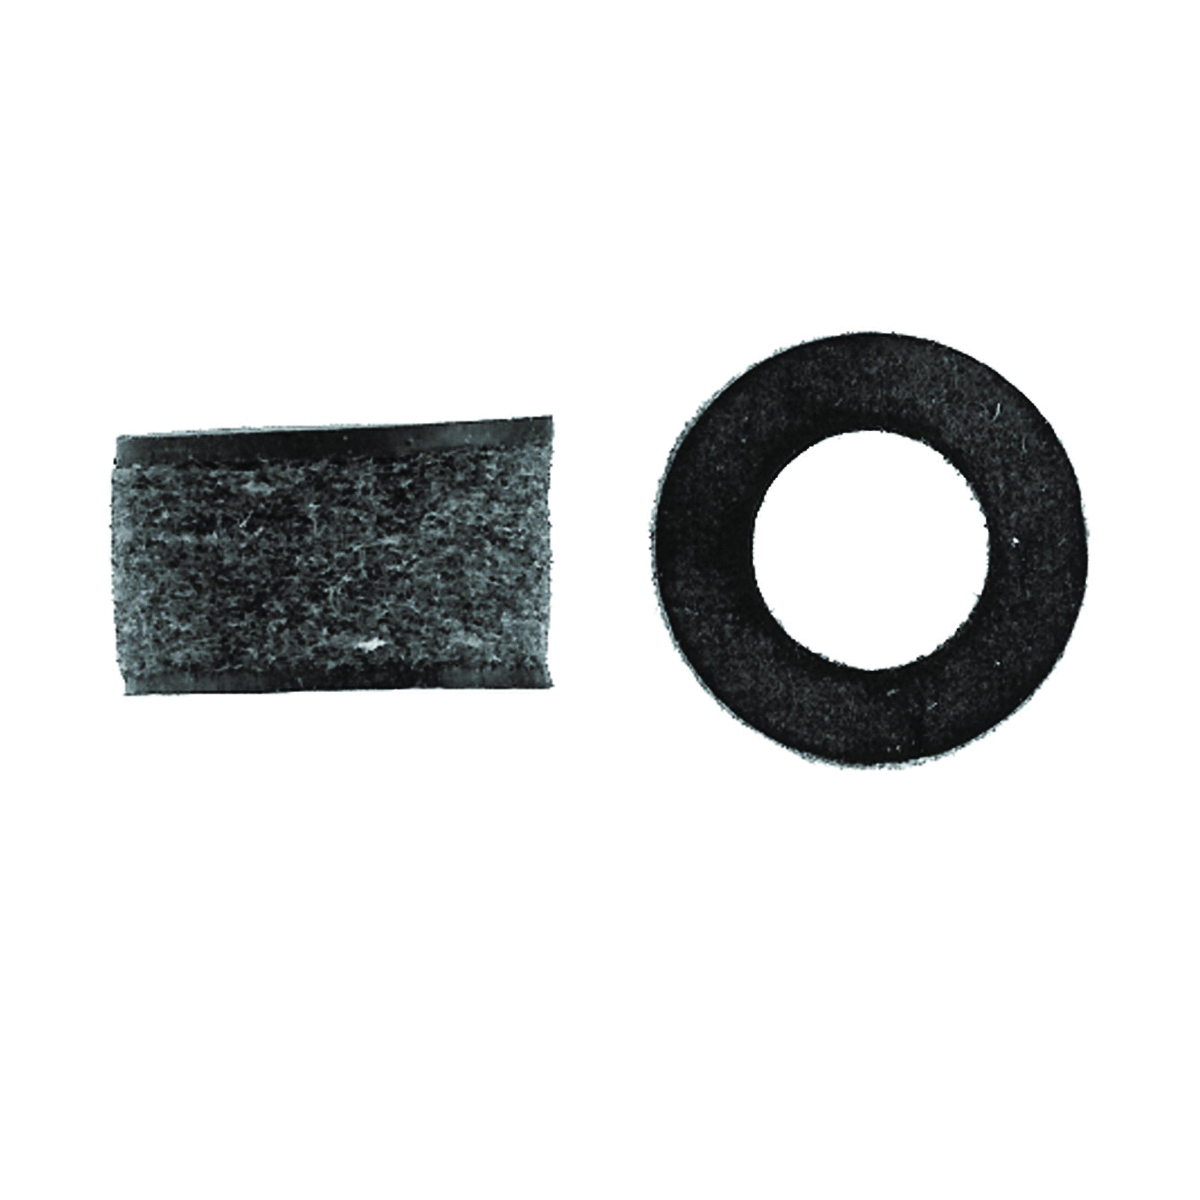 Picture of Danco 35233C Bonnet Packing, #97, 3/8 in ID x 5/8 in OD Dia, 5/16 in Thick, Felt Cloth, For: Crane Dial-Ese Faucets